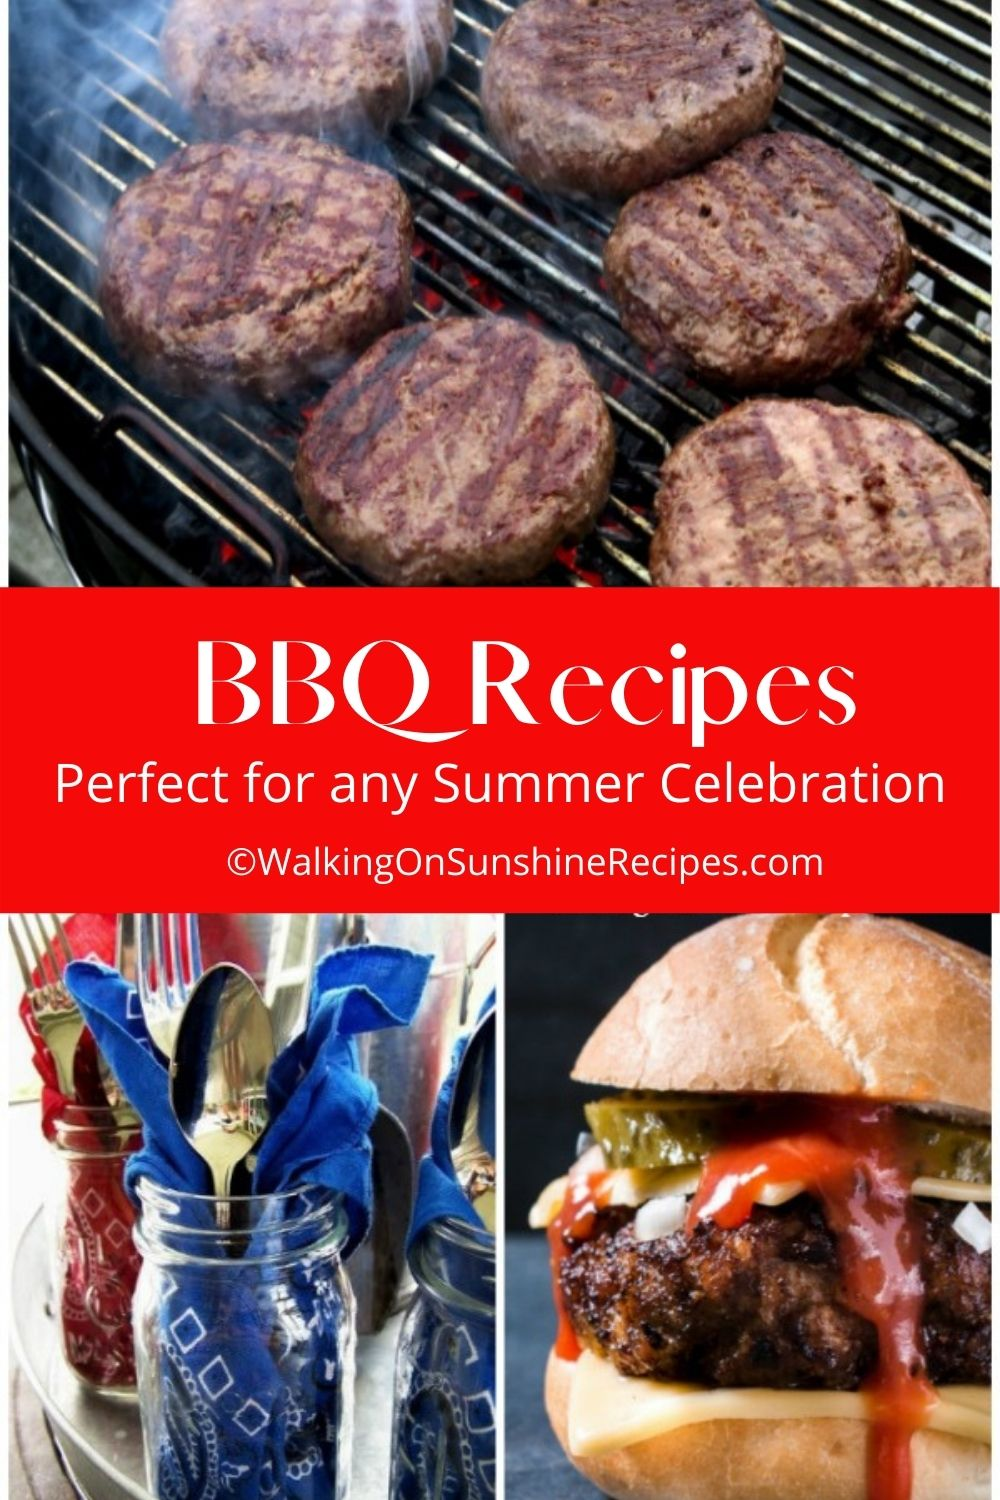 BBQ and grilled recipes.